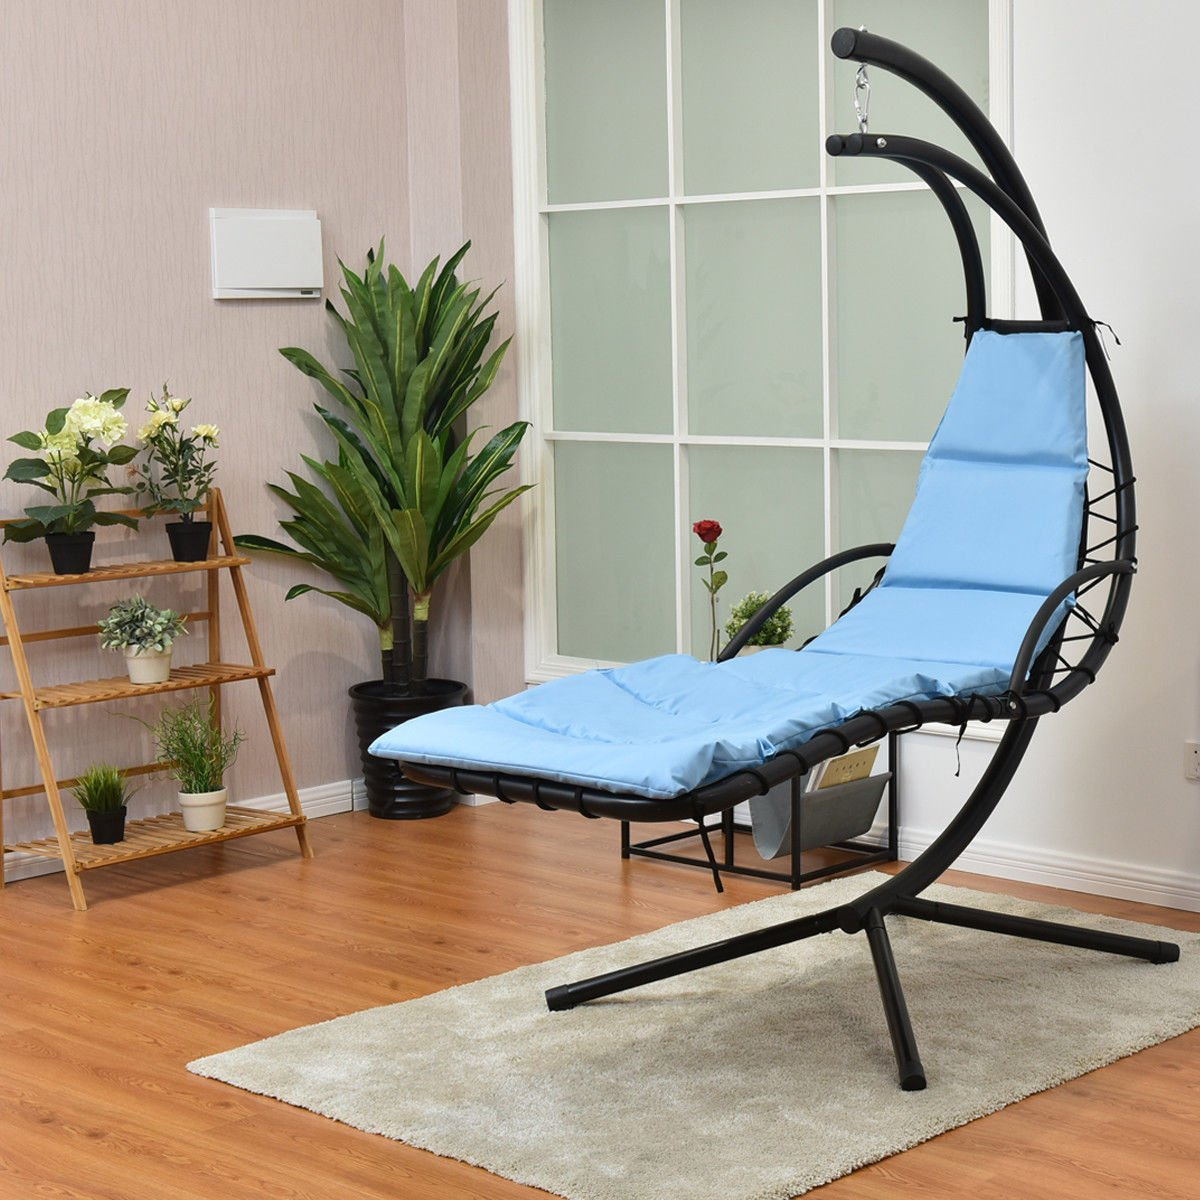 Giantex Hanging Chaise Lounger Chair Arc Stand Air Porch Swing Hammock Chair with Canopy Umbrella (Light Blue) by Giantex